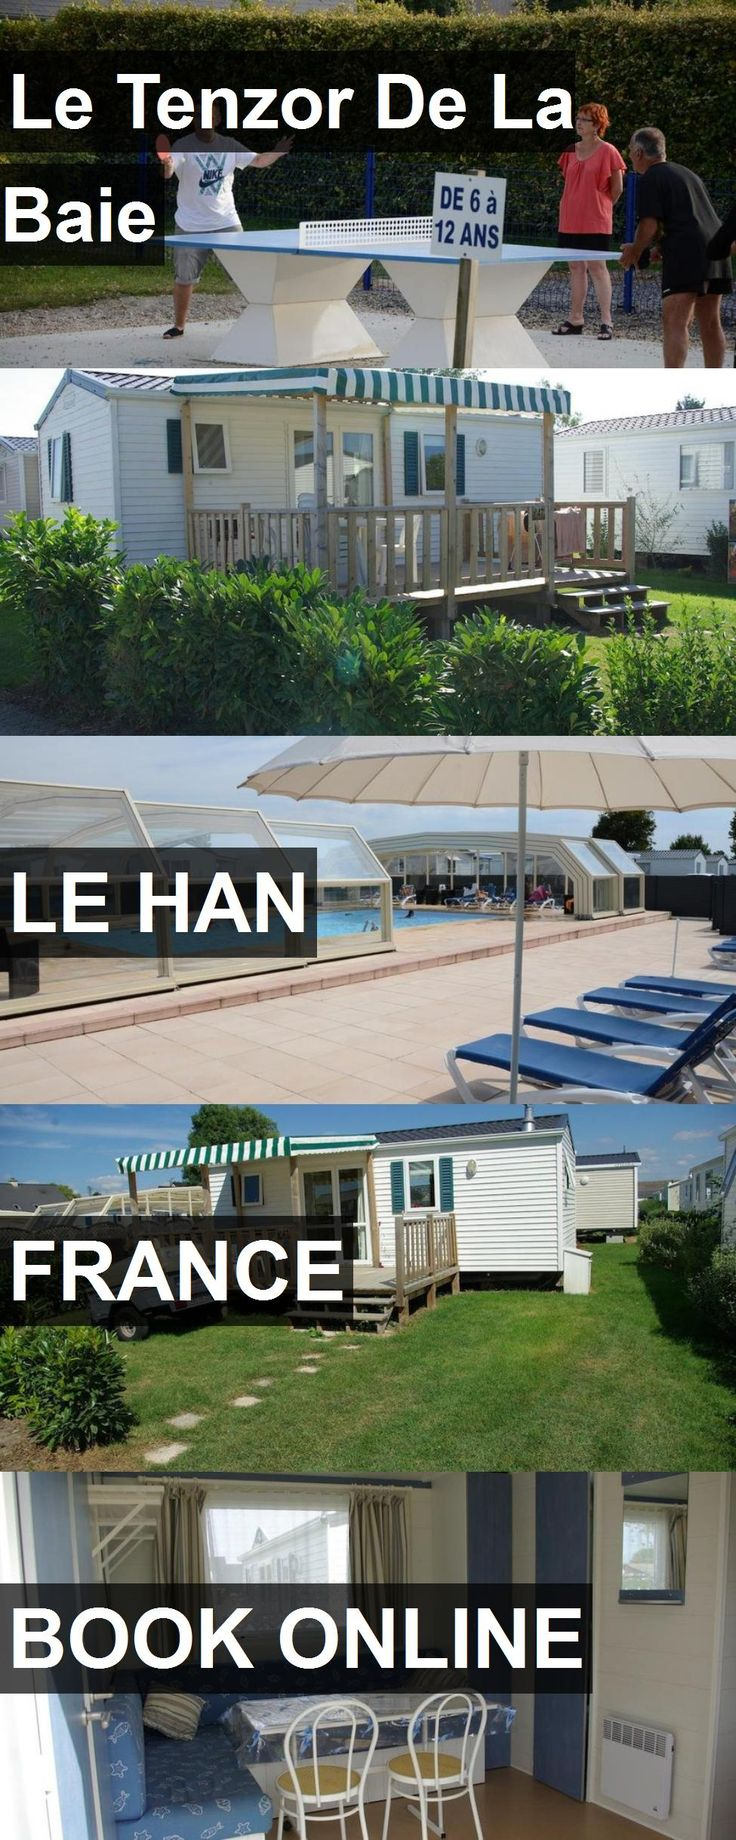 Hotel Le Tenzor De La Baie in Le Han, France. For more information, photos, reviews and best prices please follow the link. #France #LeHan #travel #vacation #hotel